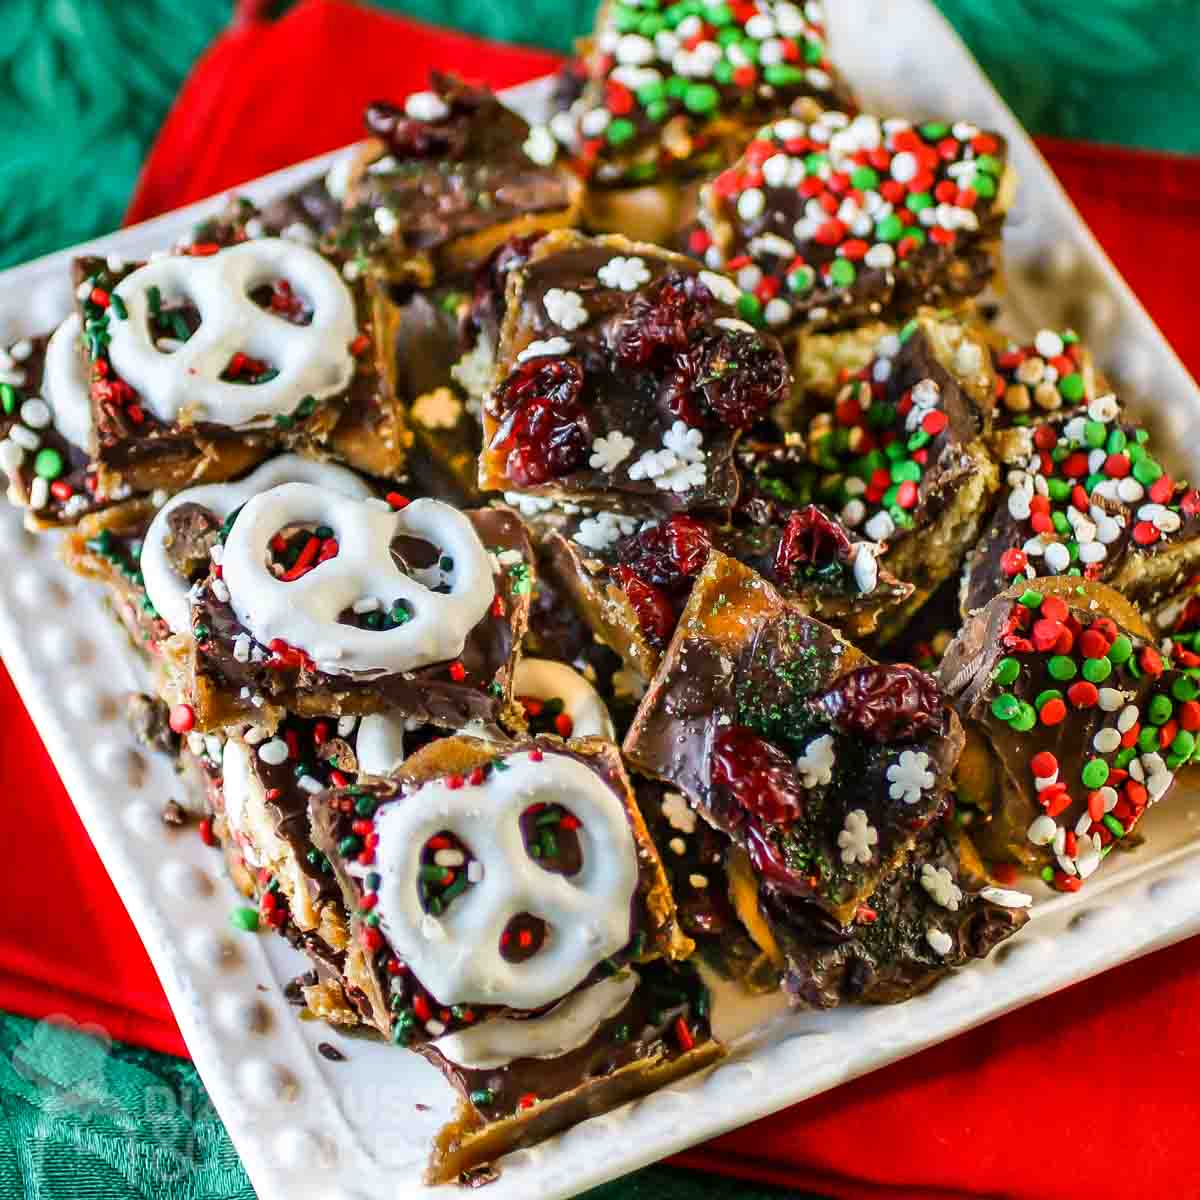 Overhead shot of Christmas bark pieces on a white square plate on a red and green cloth.